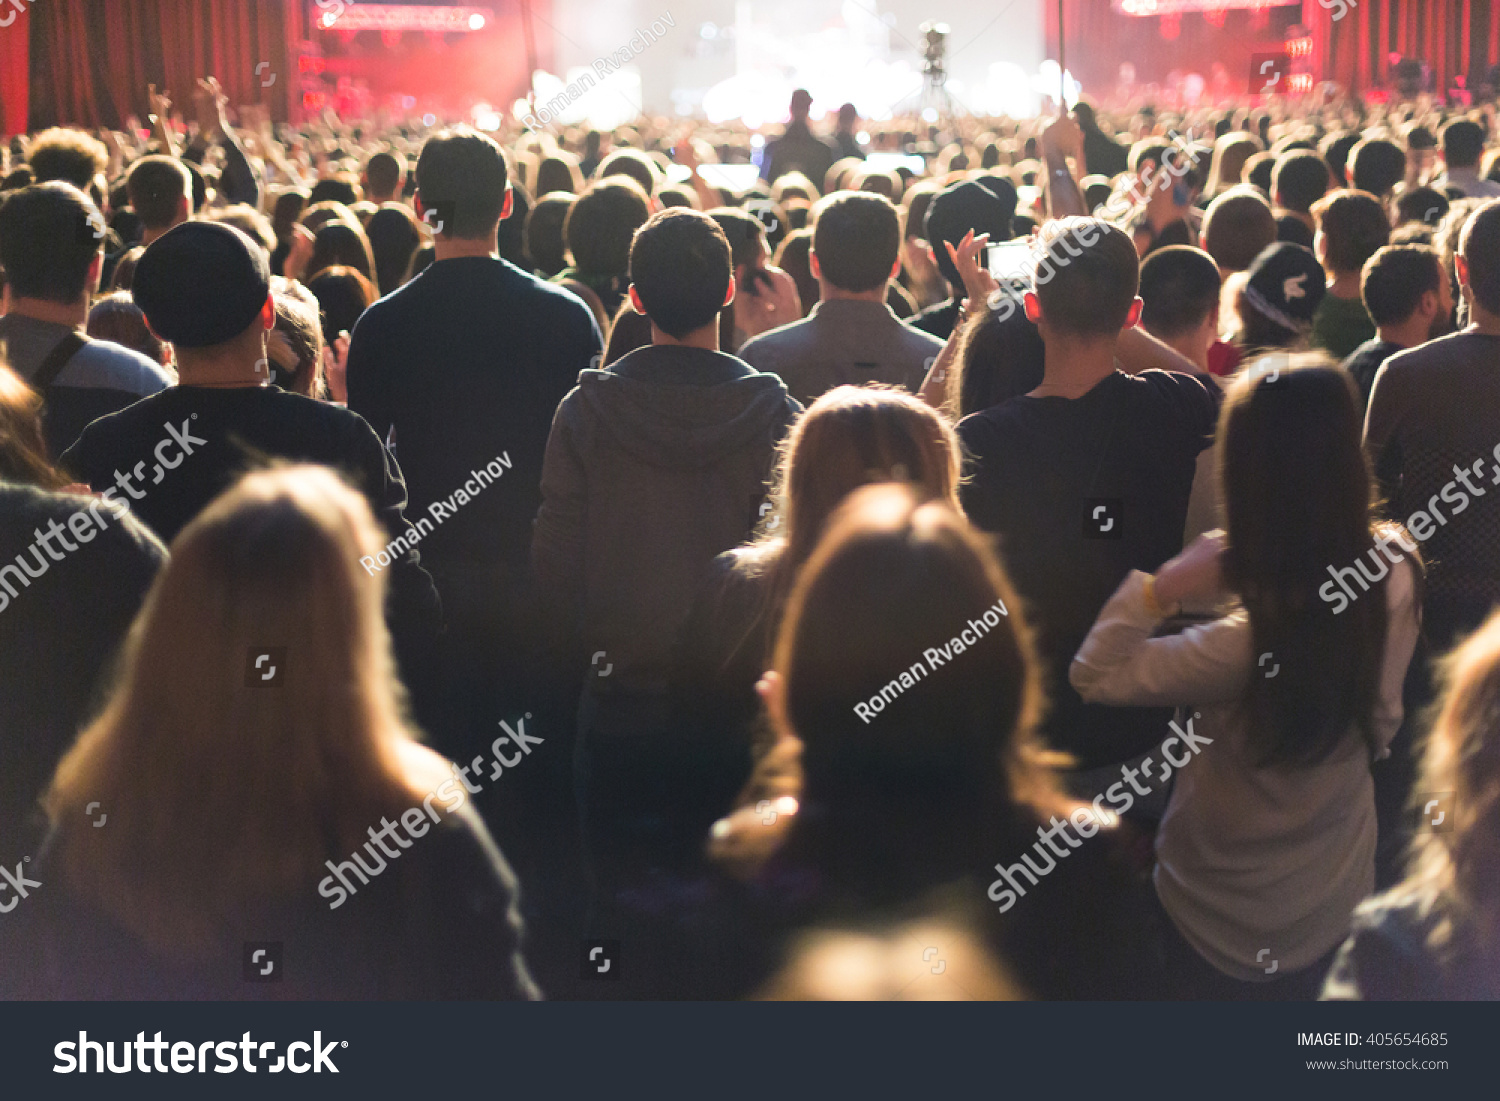 The audience watching the concert on stage. #405654685